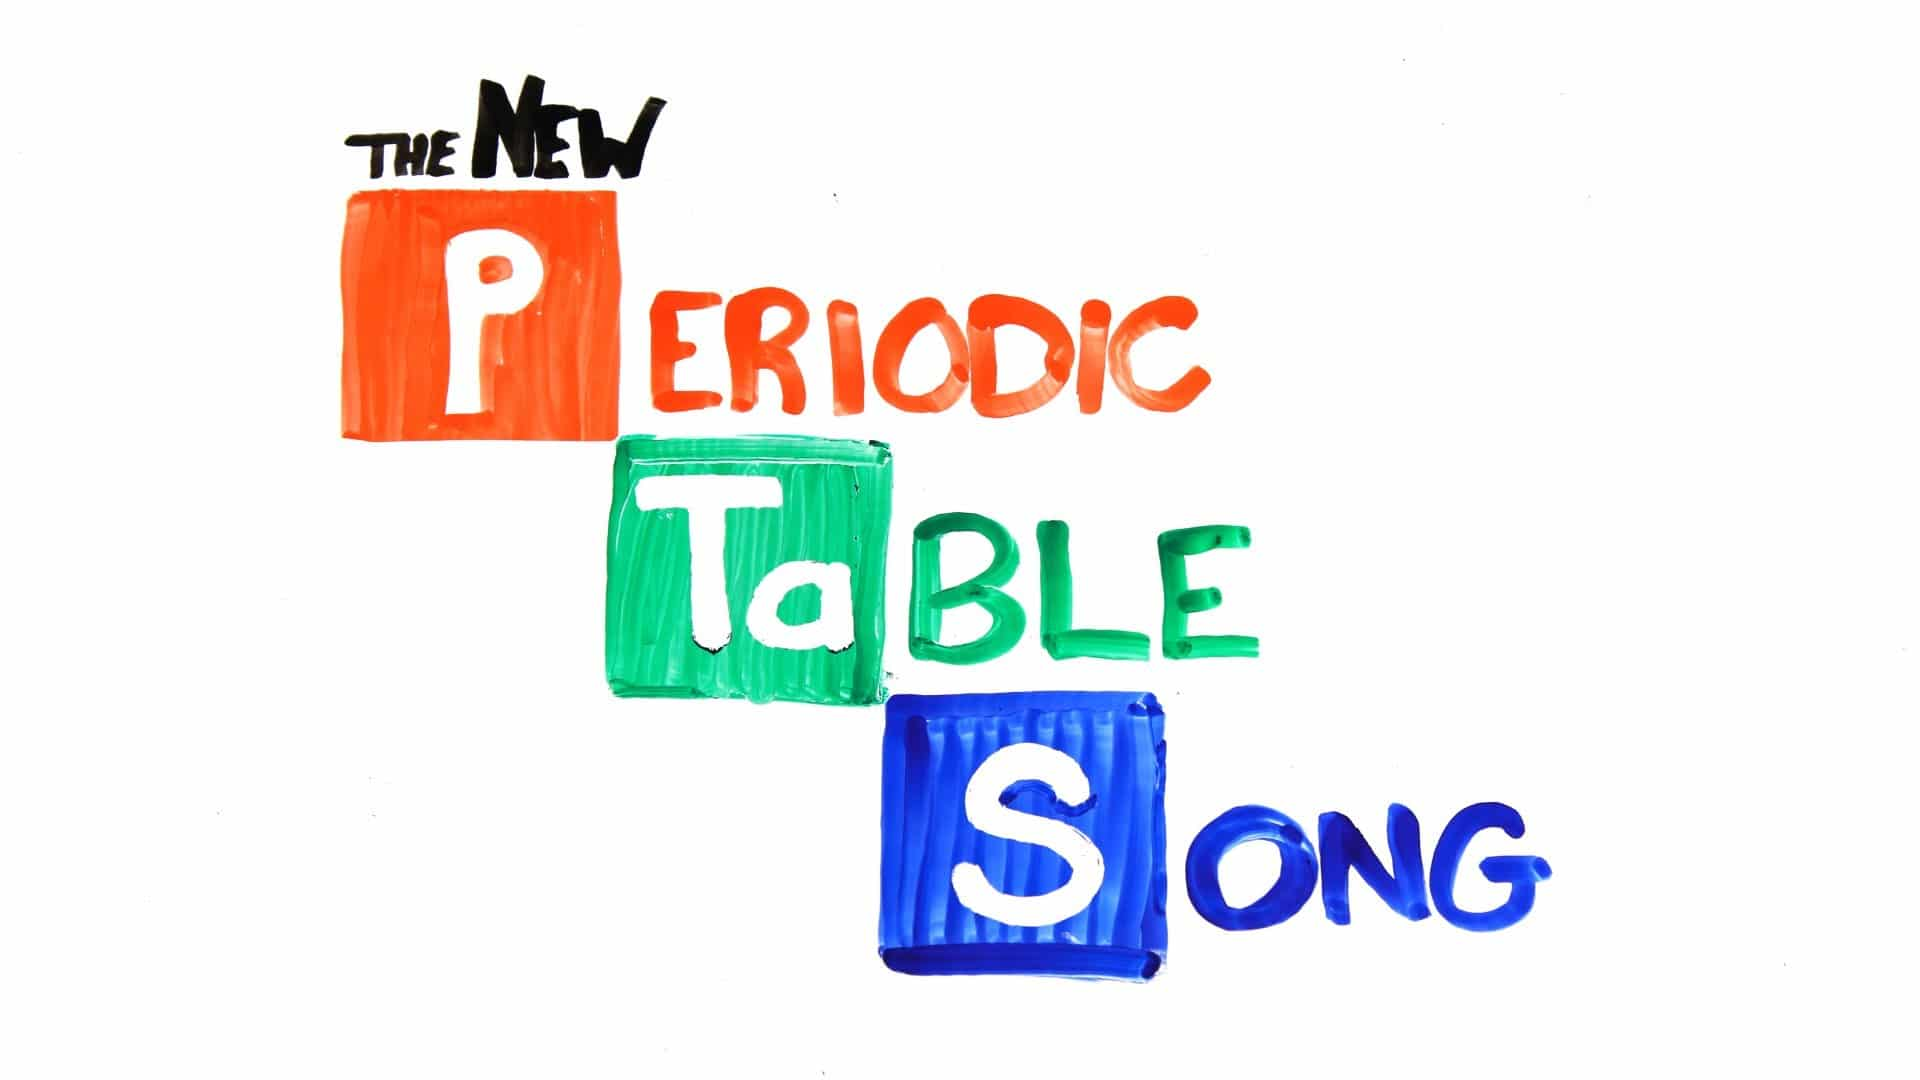 the new periodic table song asapscience the kid should see this